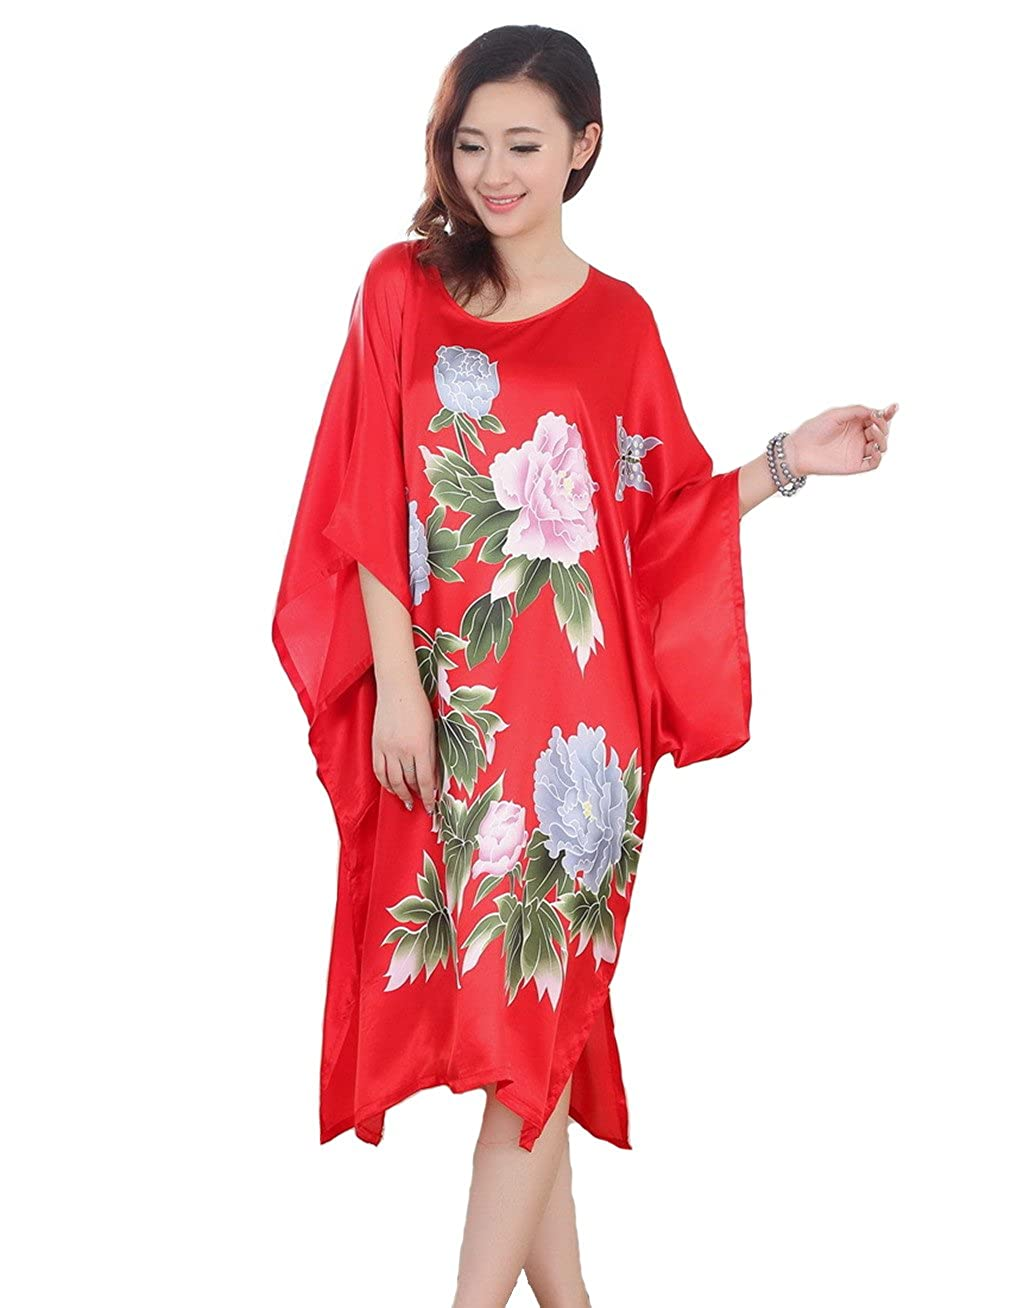 JTC Chinese Silk Ladies Lingerie Robe Dressing Gown Nightwear Womens Clothing Sleepwear Nightdress 4Colors